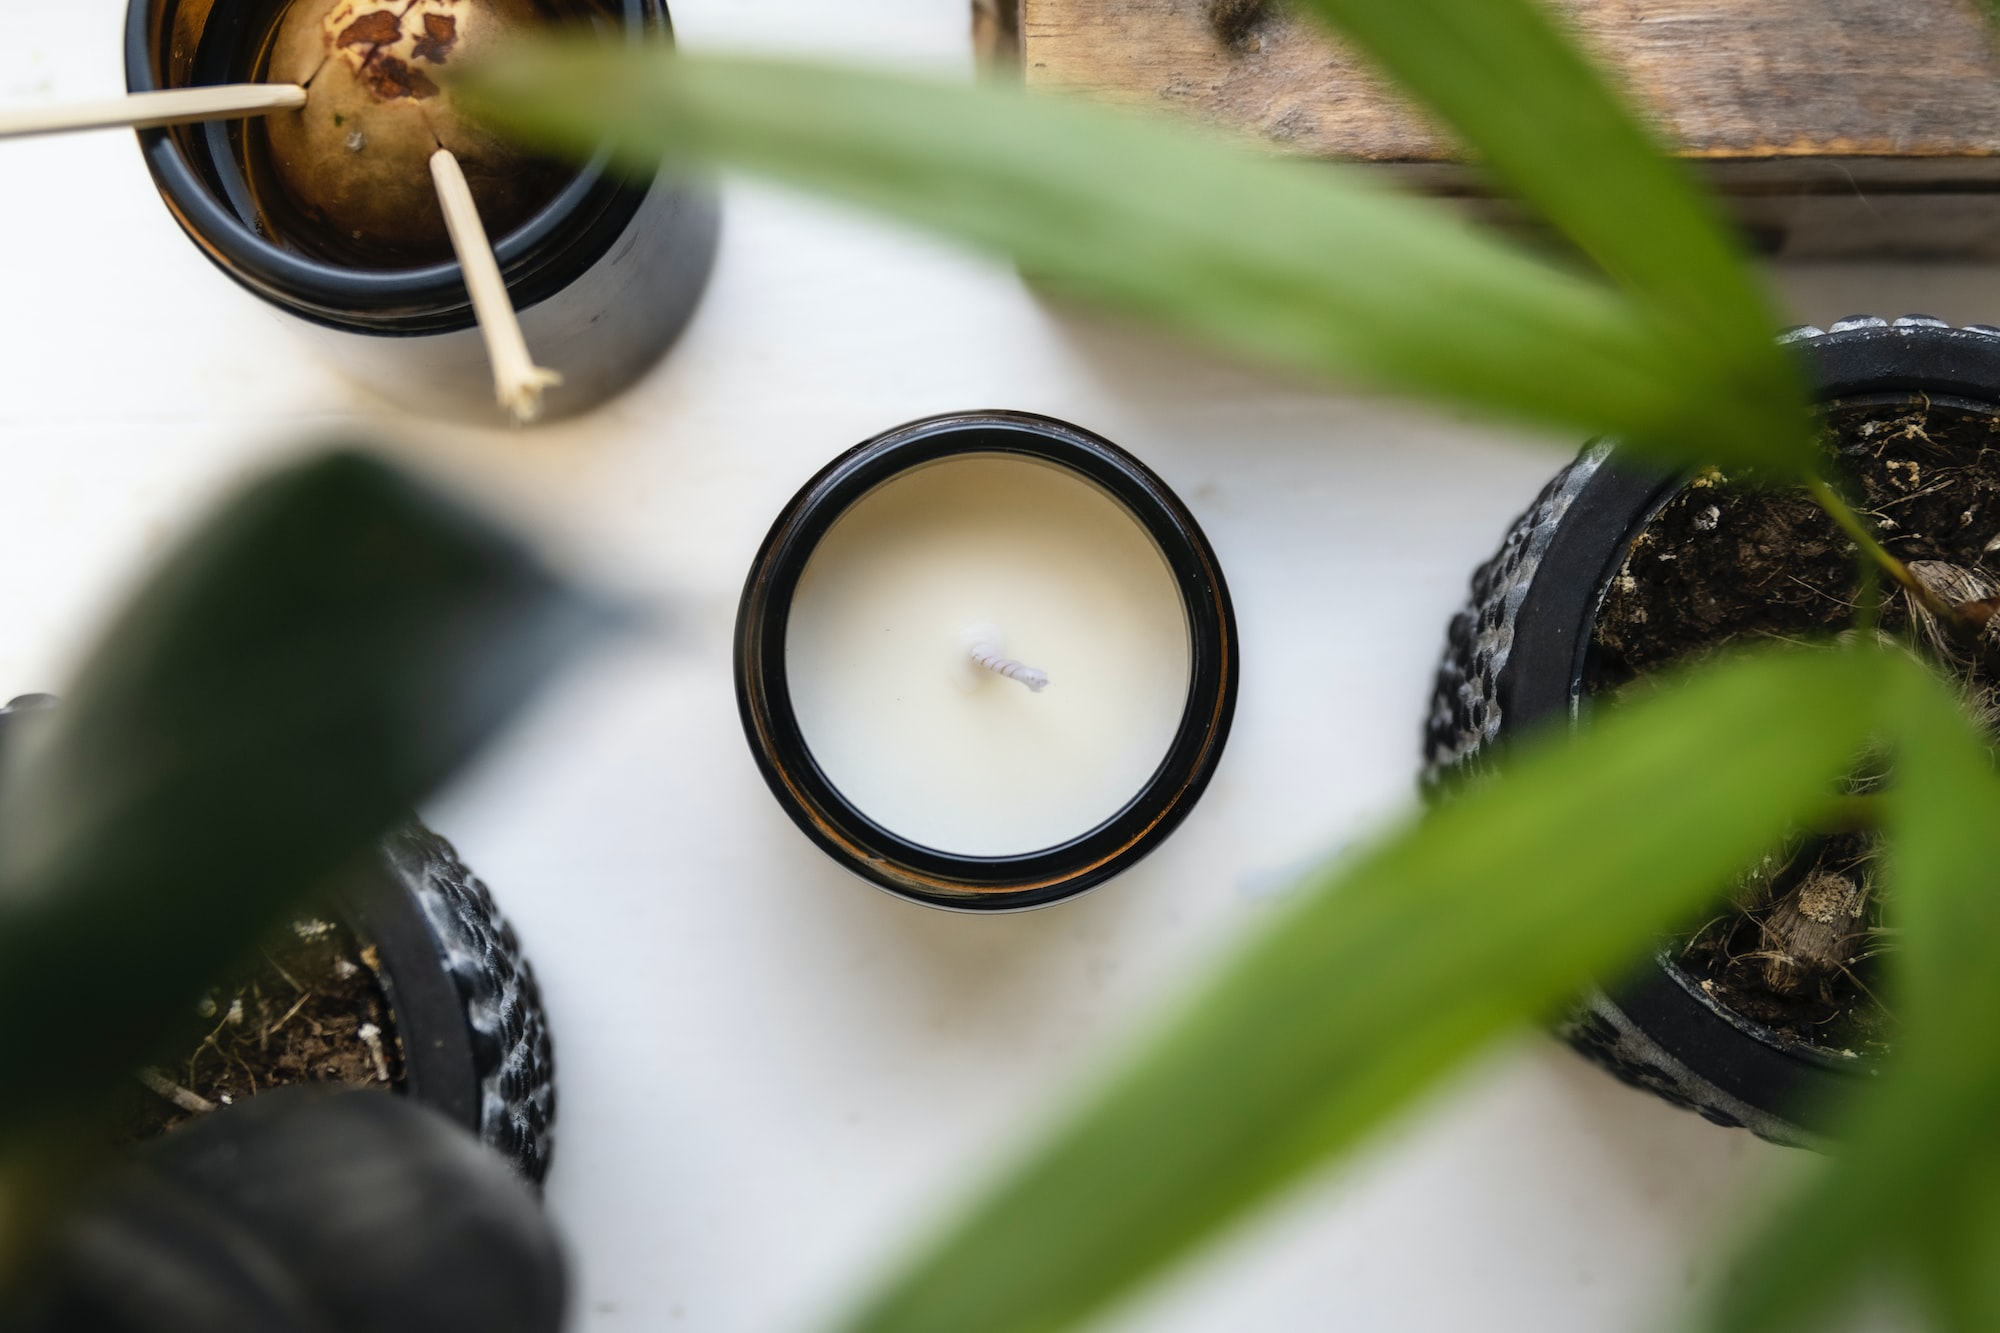 Aromatherapy Candle by Poured By Fi Top Down - Poured for Calmness